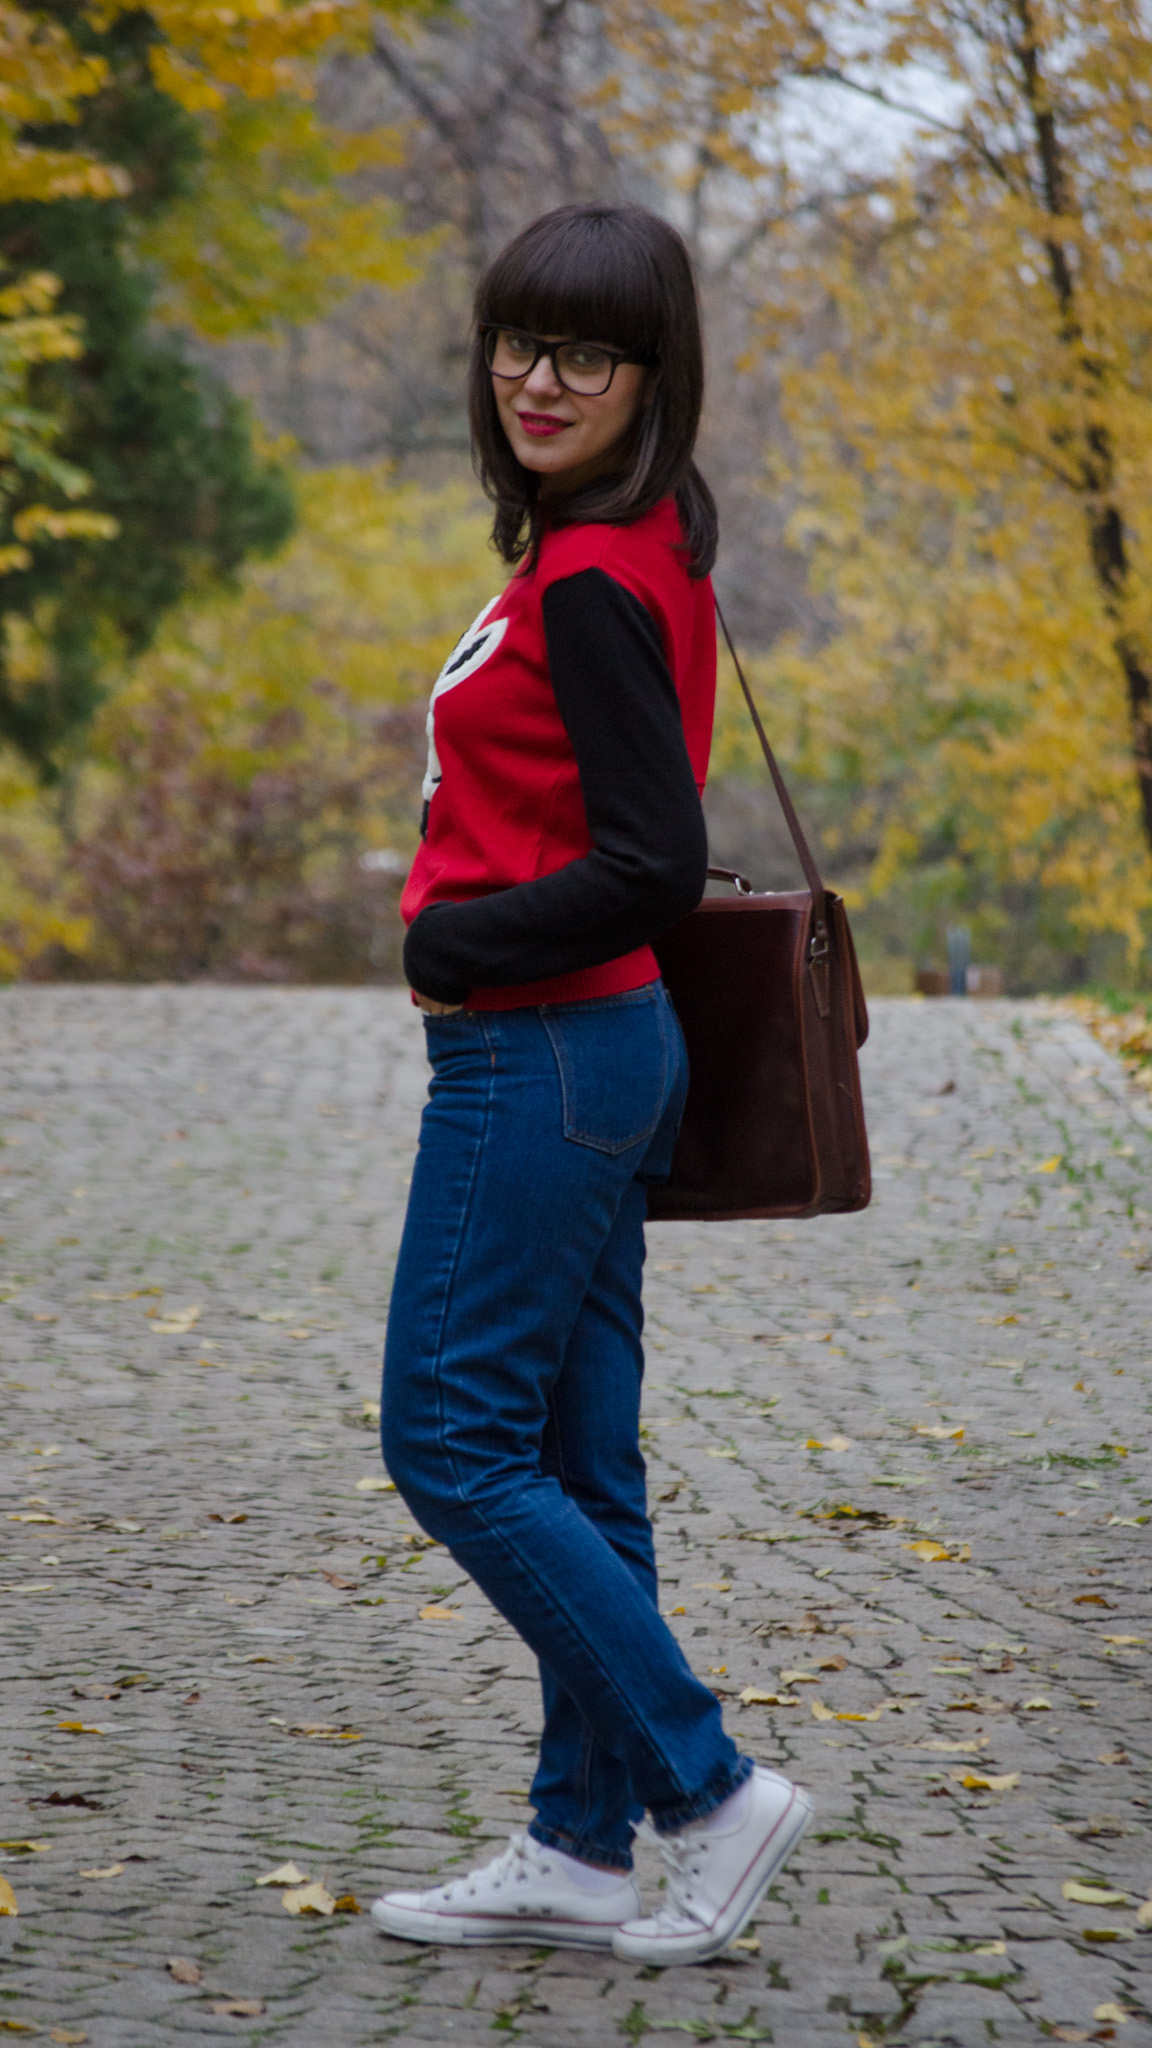 geek style outfit - wabbit season cobalt blue coat geek rabbit sweater koton mom jeans pull&bear thrifted bag satchel brown white converse sneakers glasses bangs autumn fall school outfit dorky